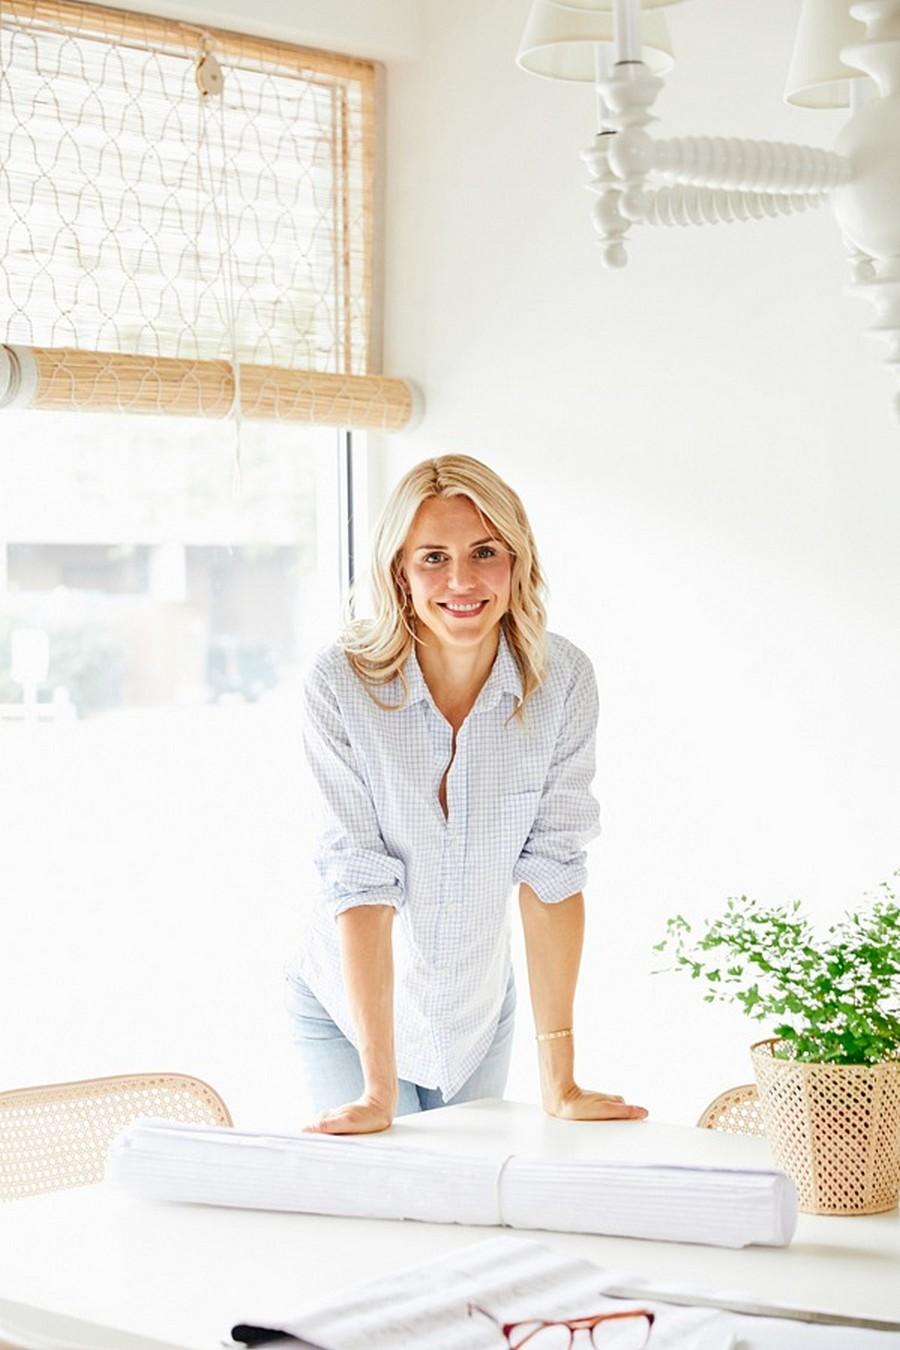 How To Create A Glamorous Dining Room Decor With Sara Bartholomew sarah bartholomew How To Create A Glamorous Dining Room Decor With Sarah Bartholomew How To Create A Glamorous Dining Room Decor With Sara Bartholomew 7